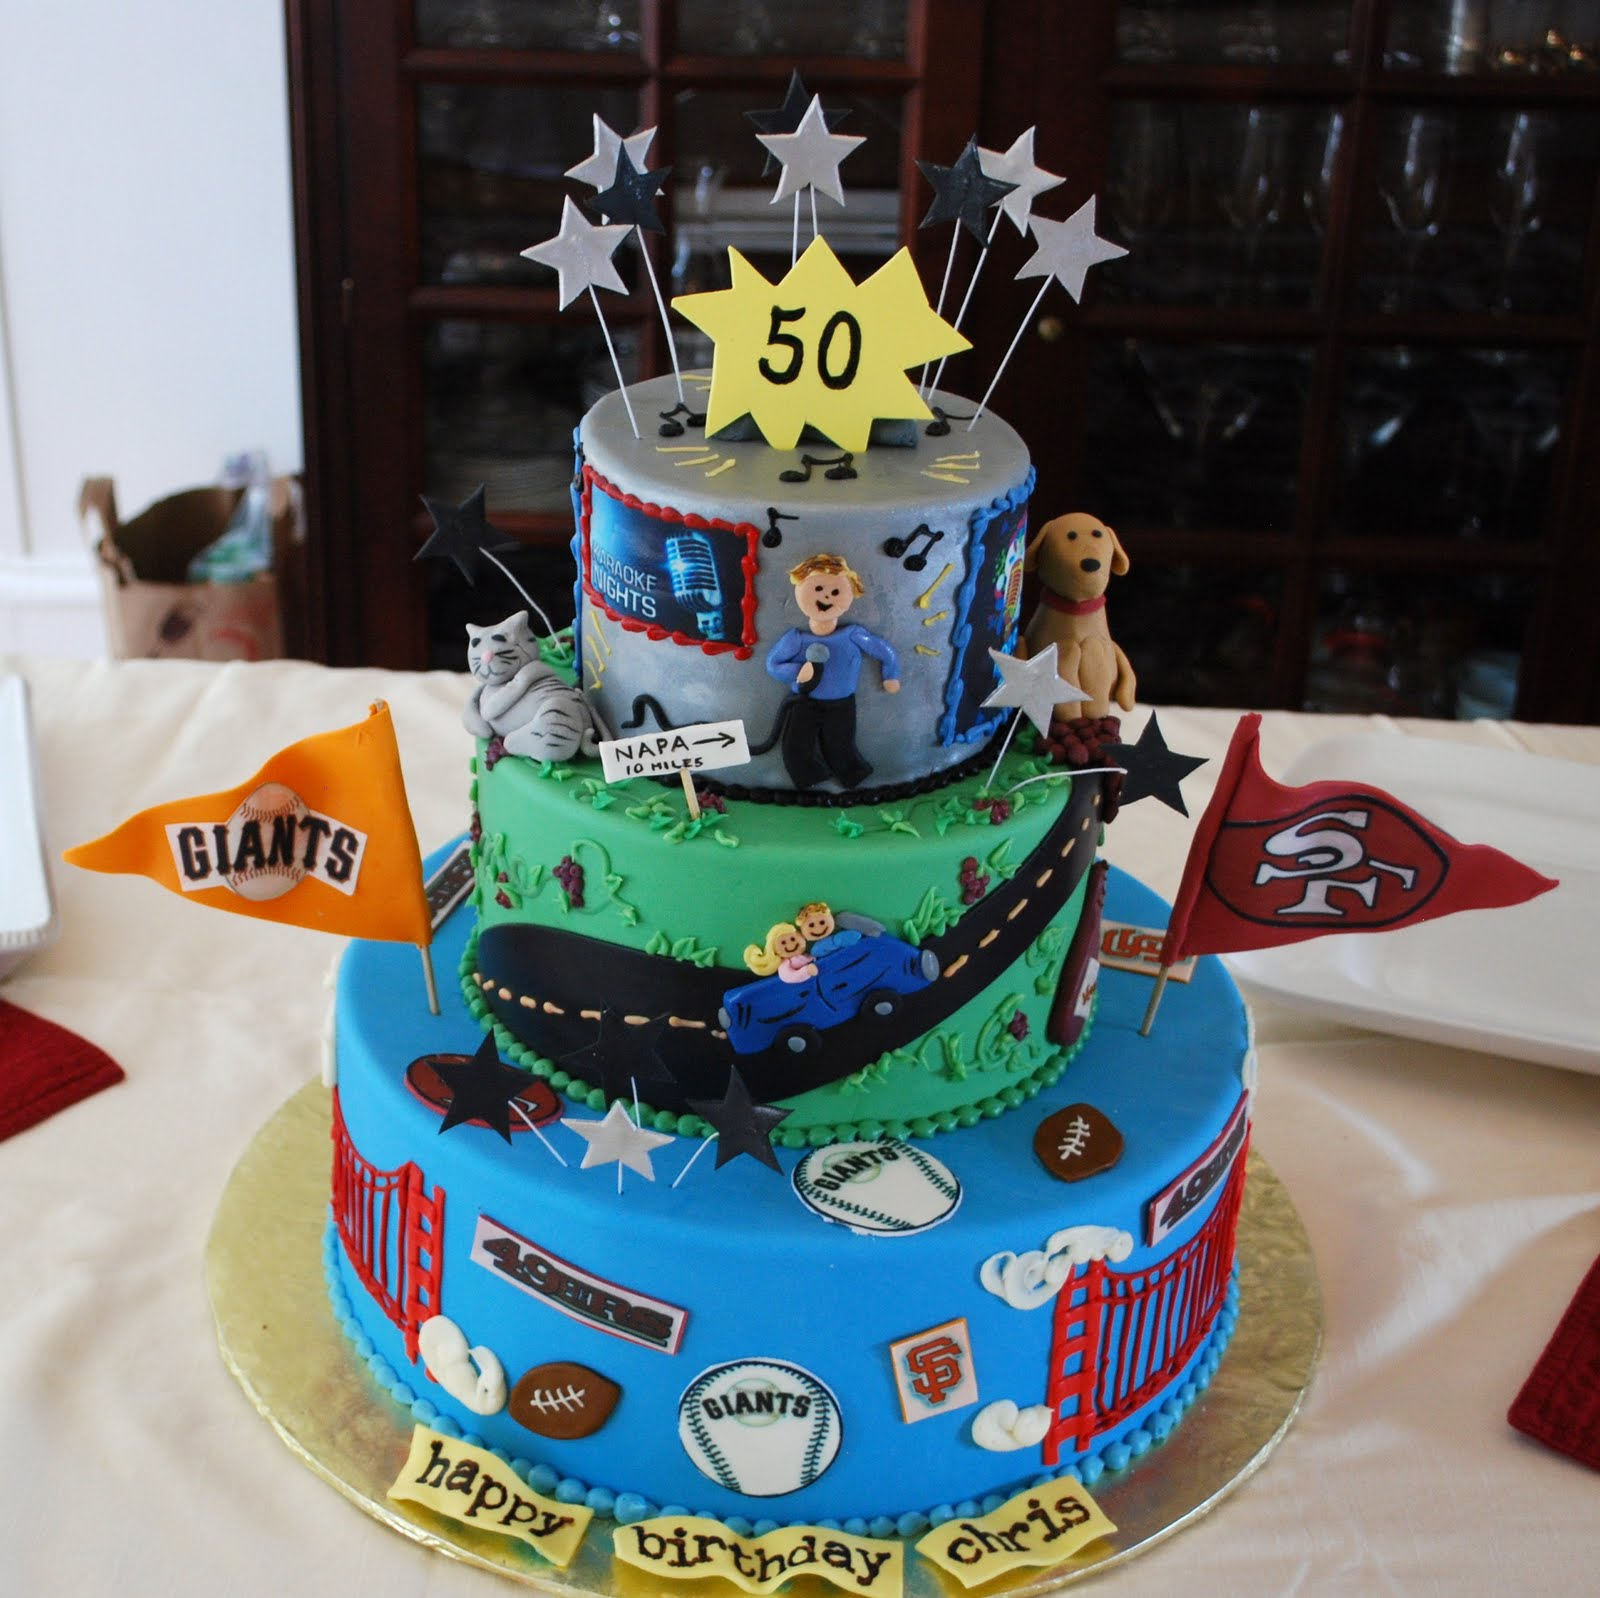 50th Birthday Cakes Ideas For A Guy 37033 Together For A S